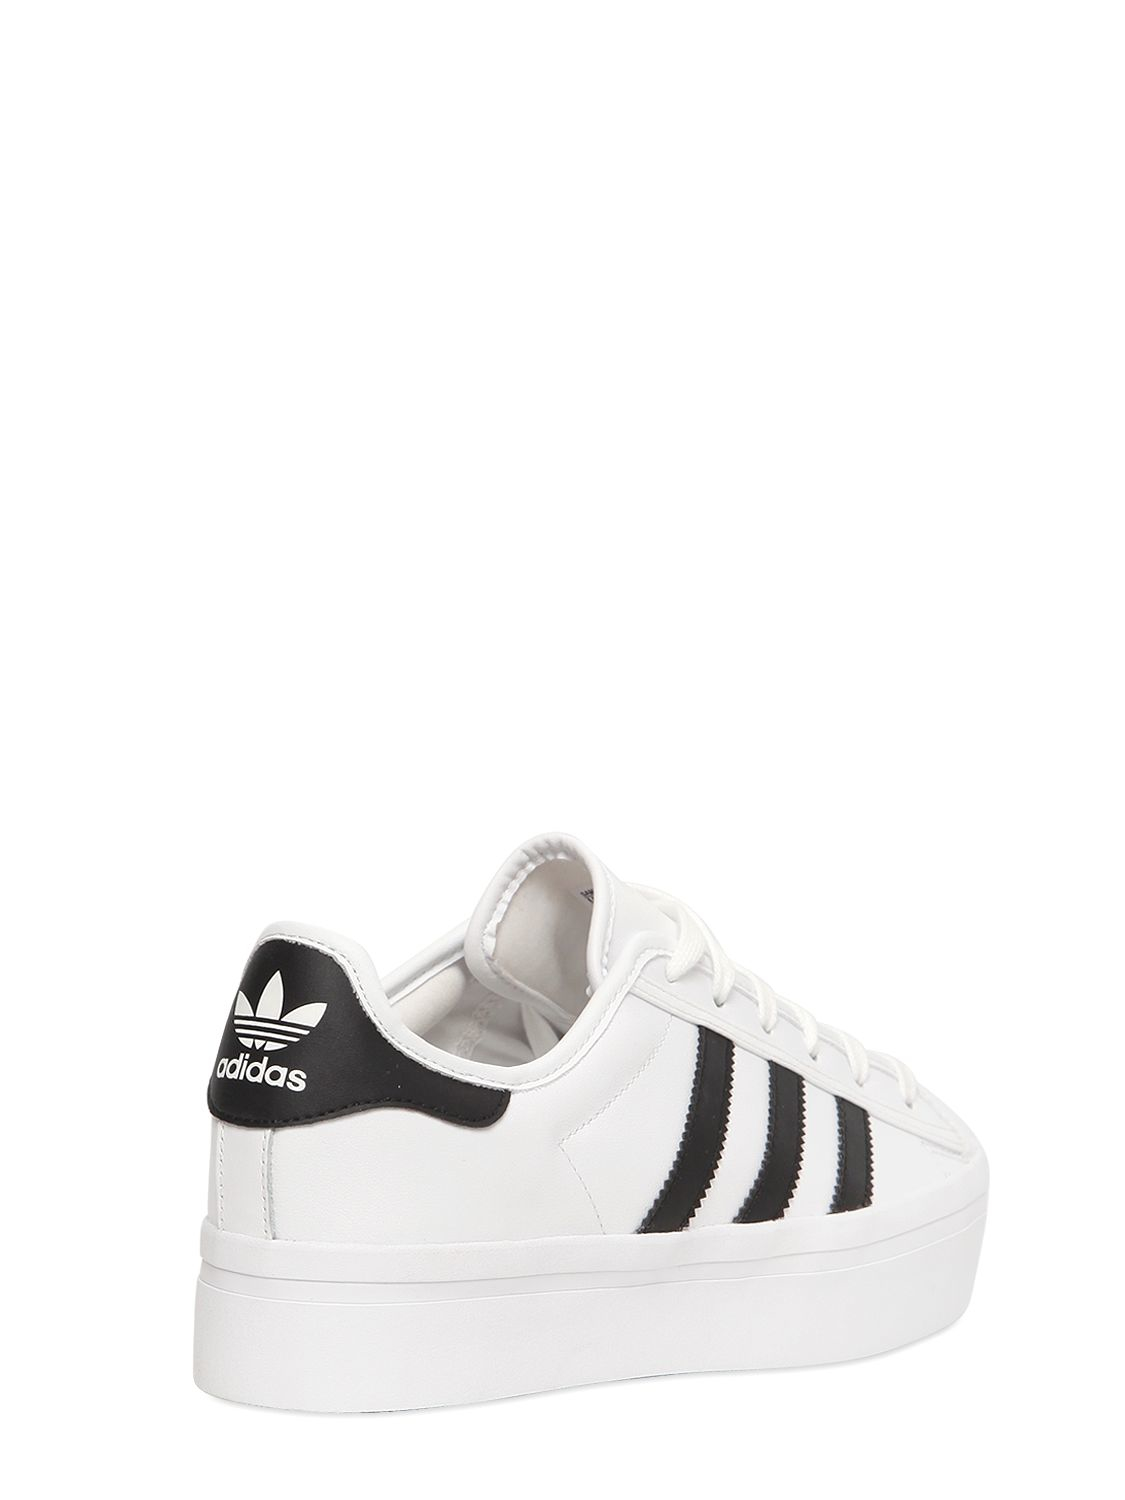 1f78127b70a0 Lyst - adidas Originals Superstar Platform Leather Sneakers in White